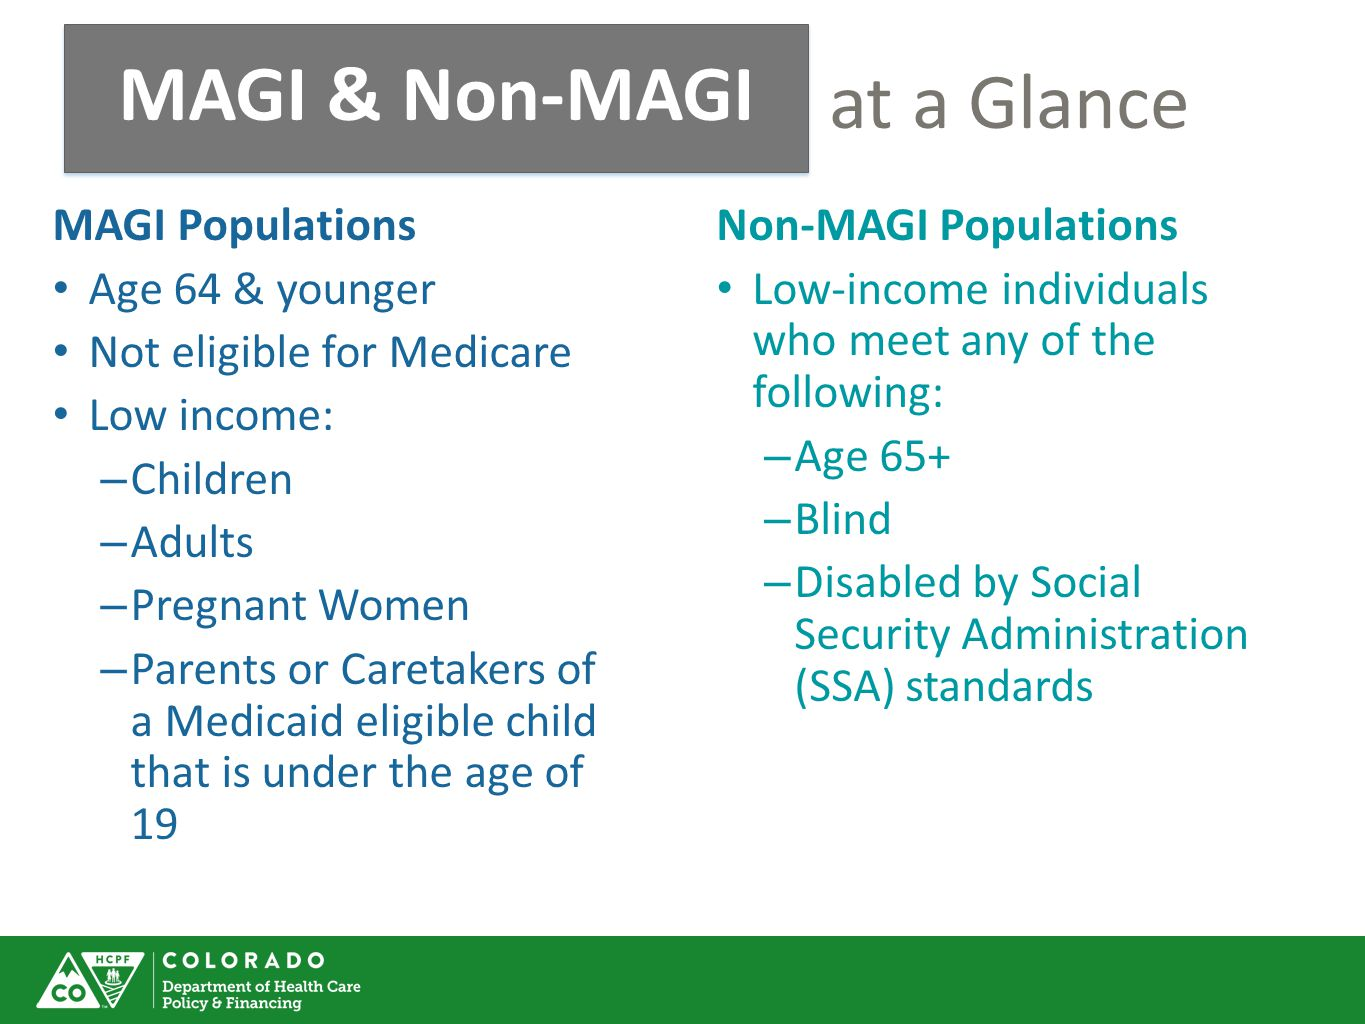 MAGI & Non-MAGI at a Glance MAGI & Non-MAGI MAGI Populations Age 64 & younger Not eligible for Medicare Low income: – Children – Adults – Pregnant Women – Parents or Caretakers of a Medicaid eligible child that is under the age of 19 Non-MAGI Populations Low-income individuals who meet any of the following: – Age 65+ – Blind – Disabled by Social Security Administration (SSA) standards